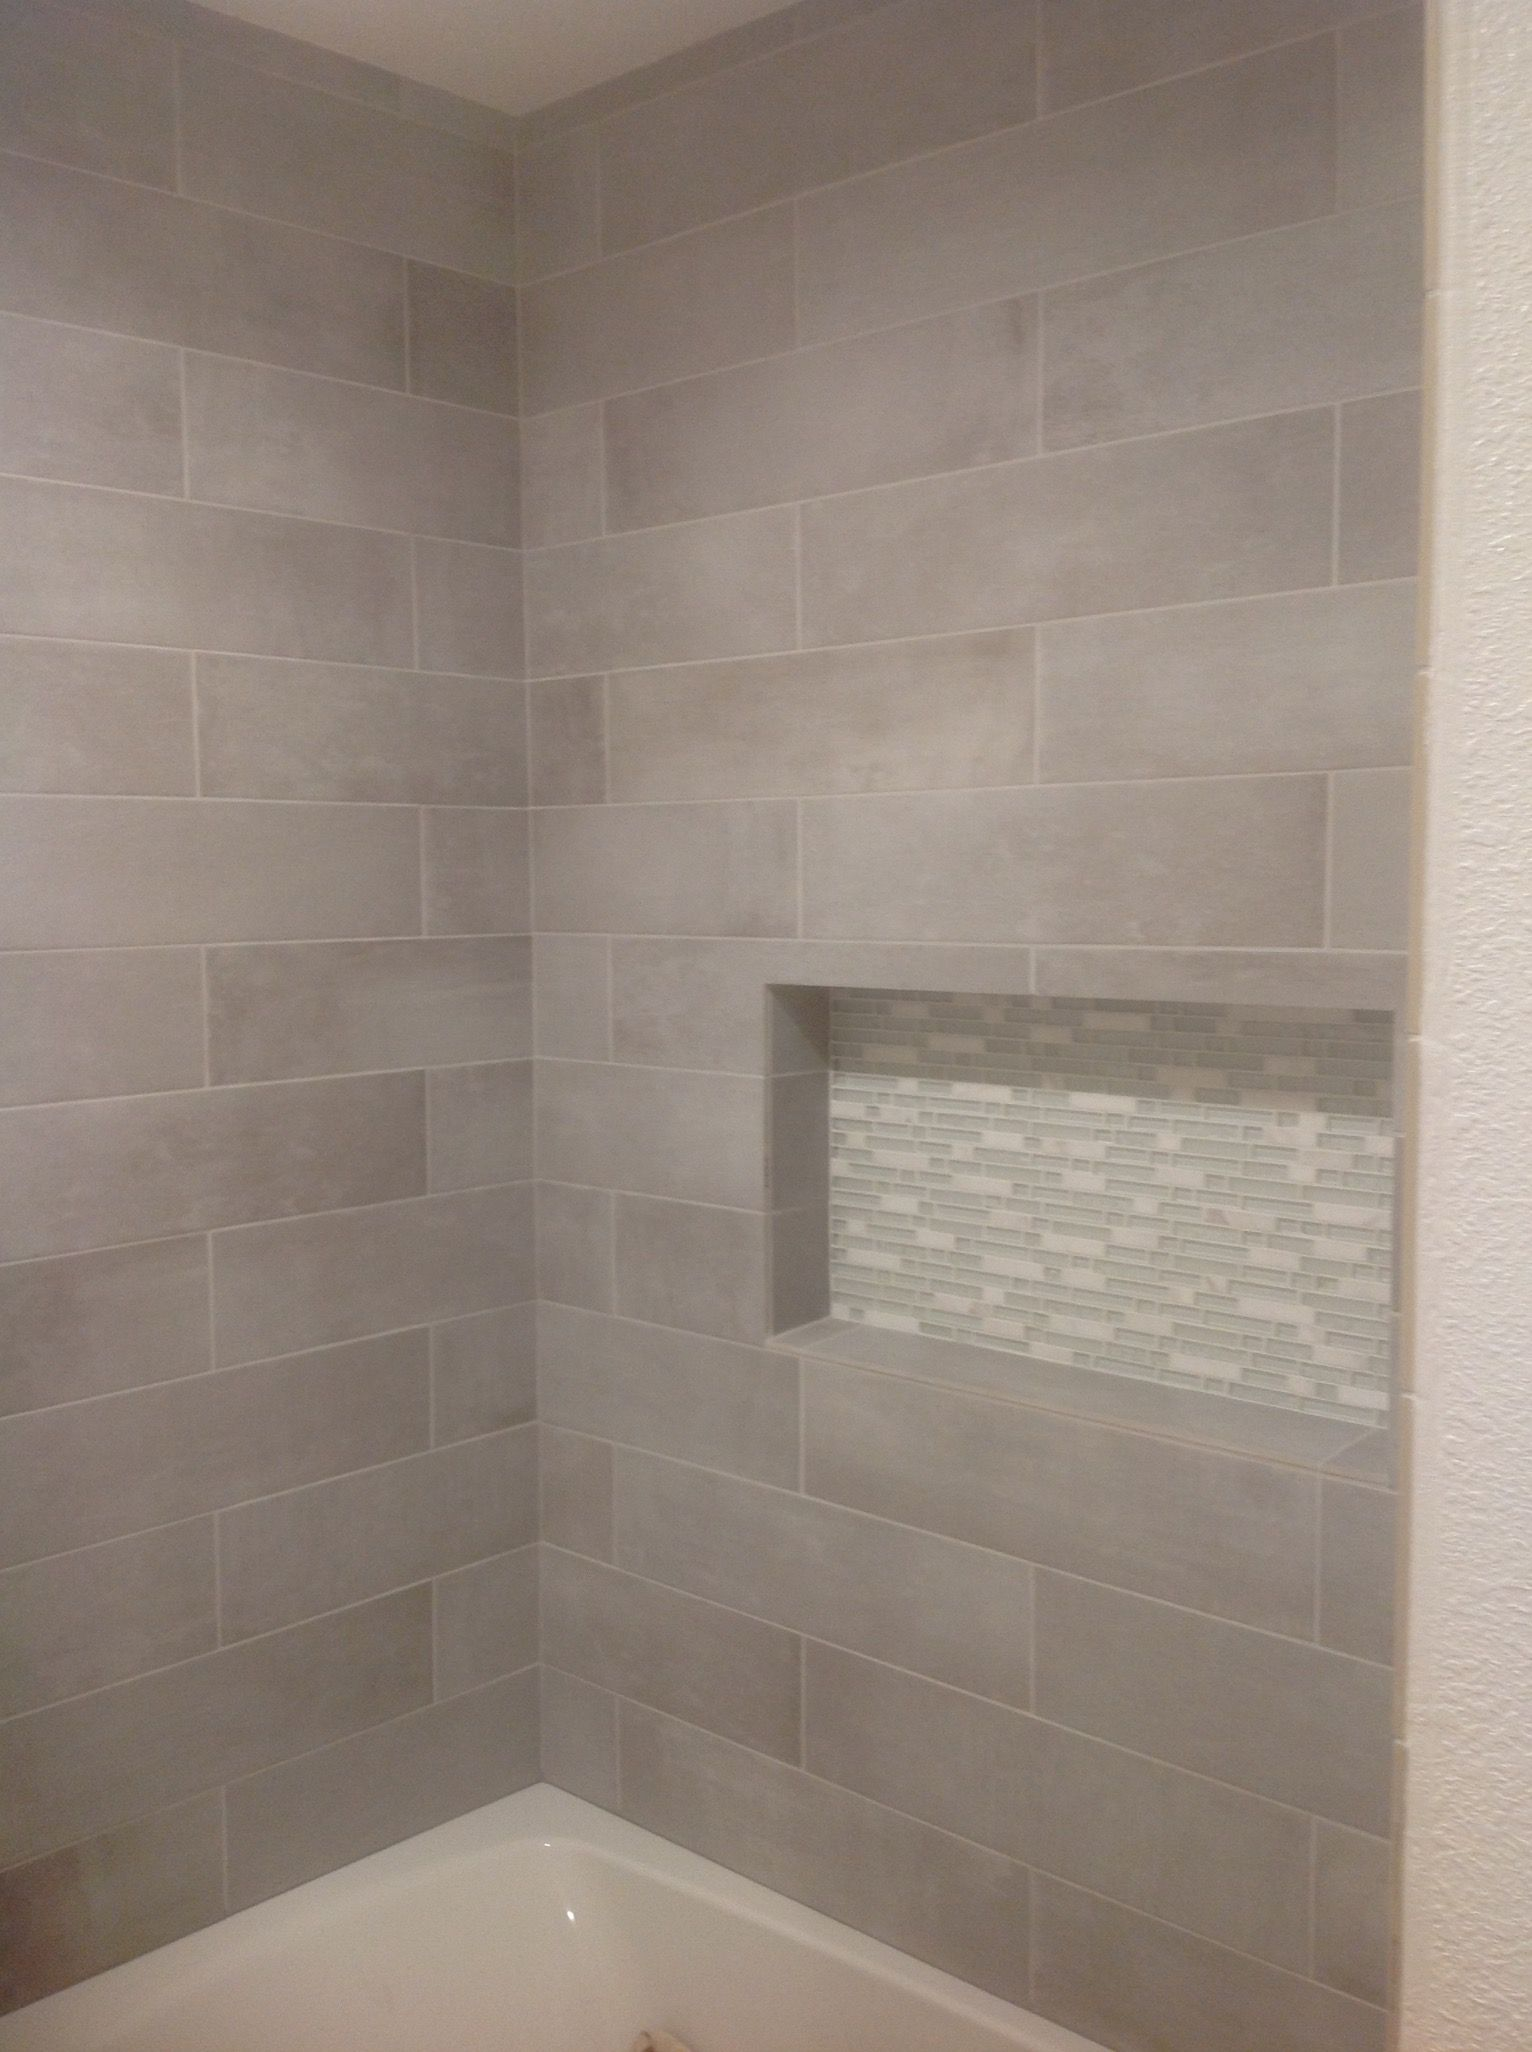 Cityside Gray Porcelain Tile from Lowes | bathroom | Pinterest ...